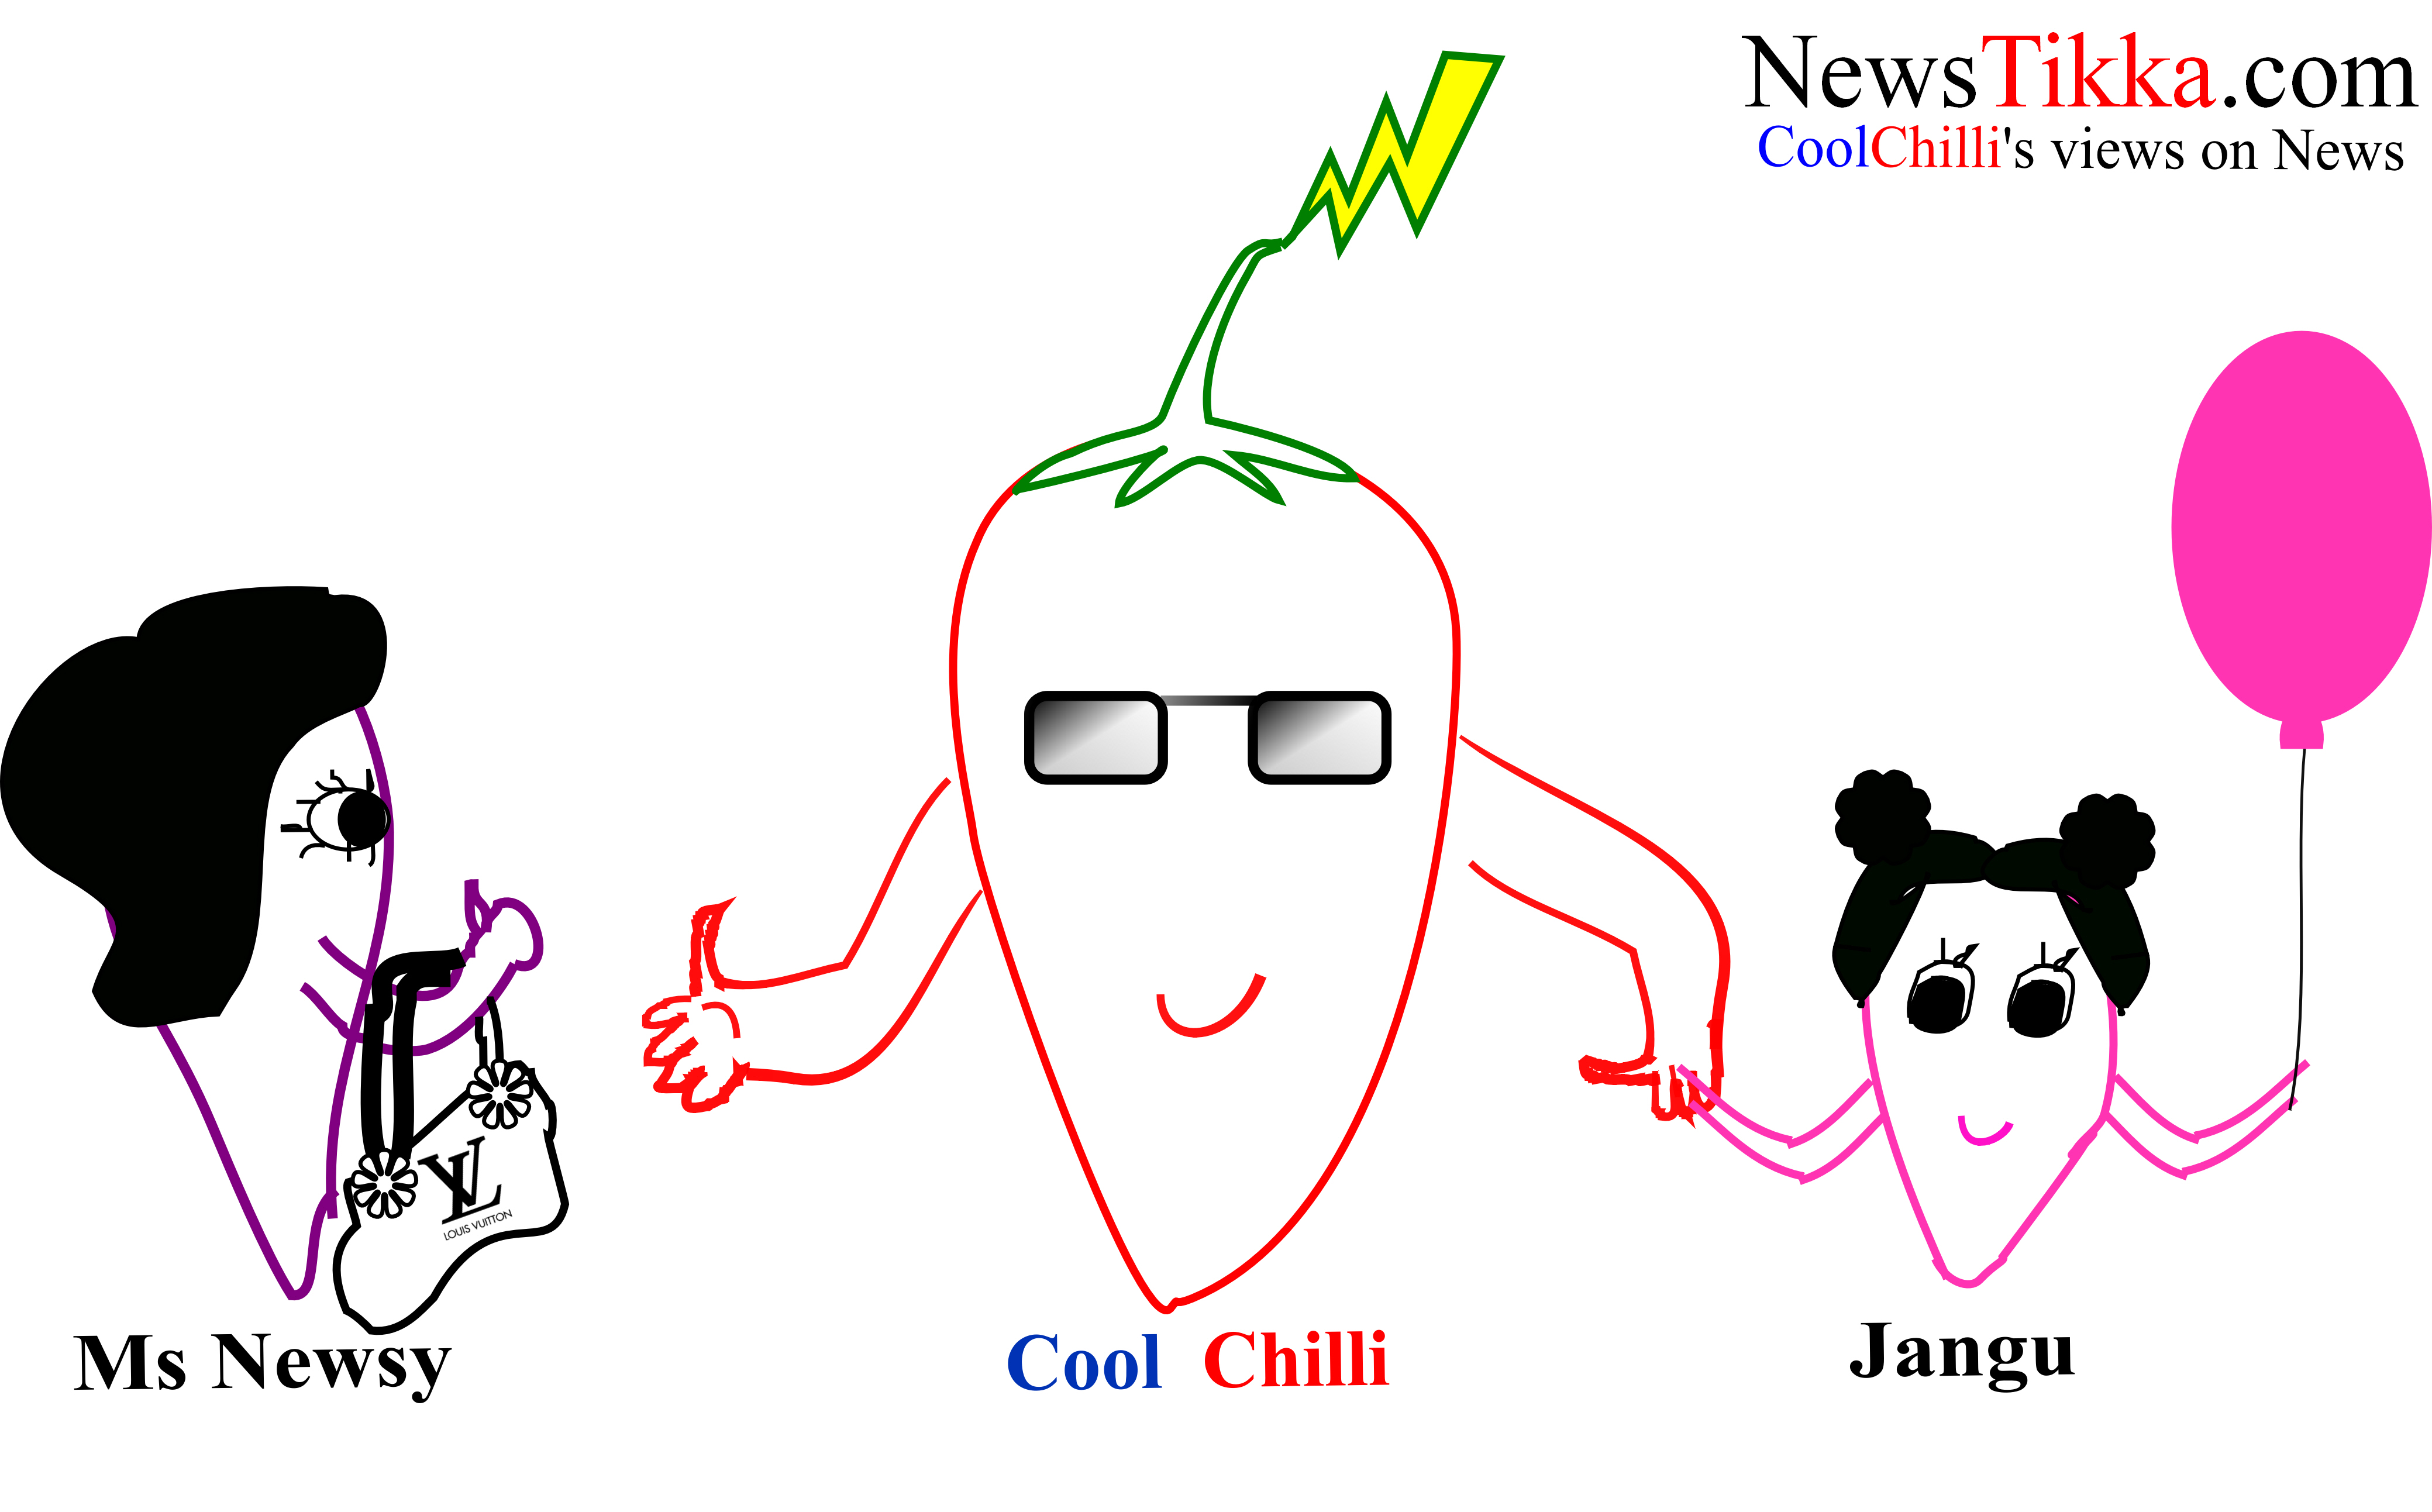 news, tikka, humor, cool chilli's views on news, newsy, jangu,